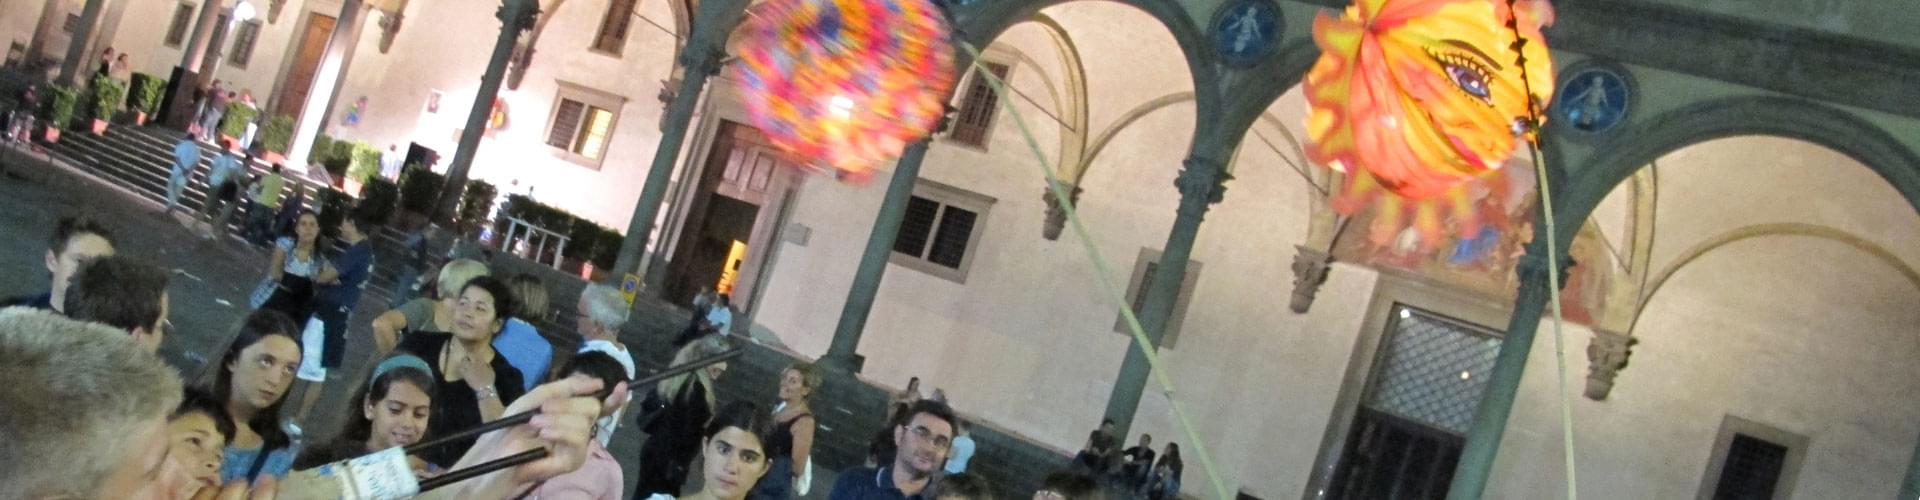 Festival of the lanterns, tuscan festivals, florence events, Festa della Rificolona